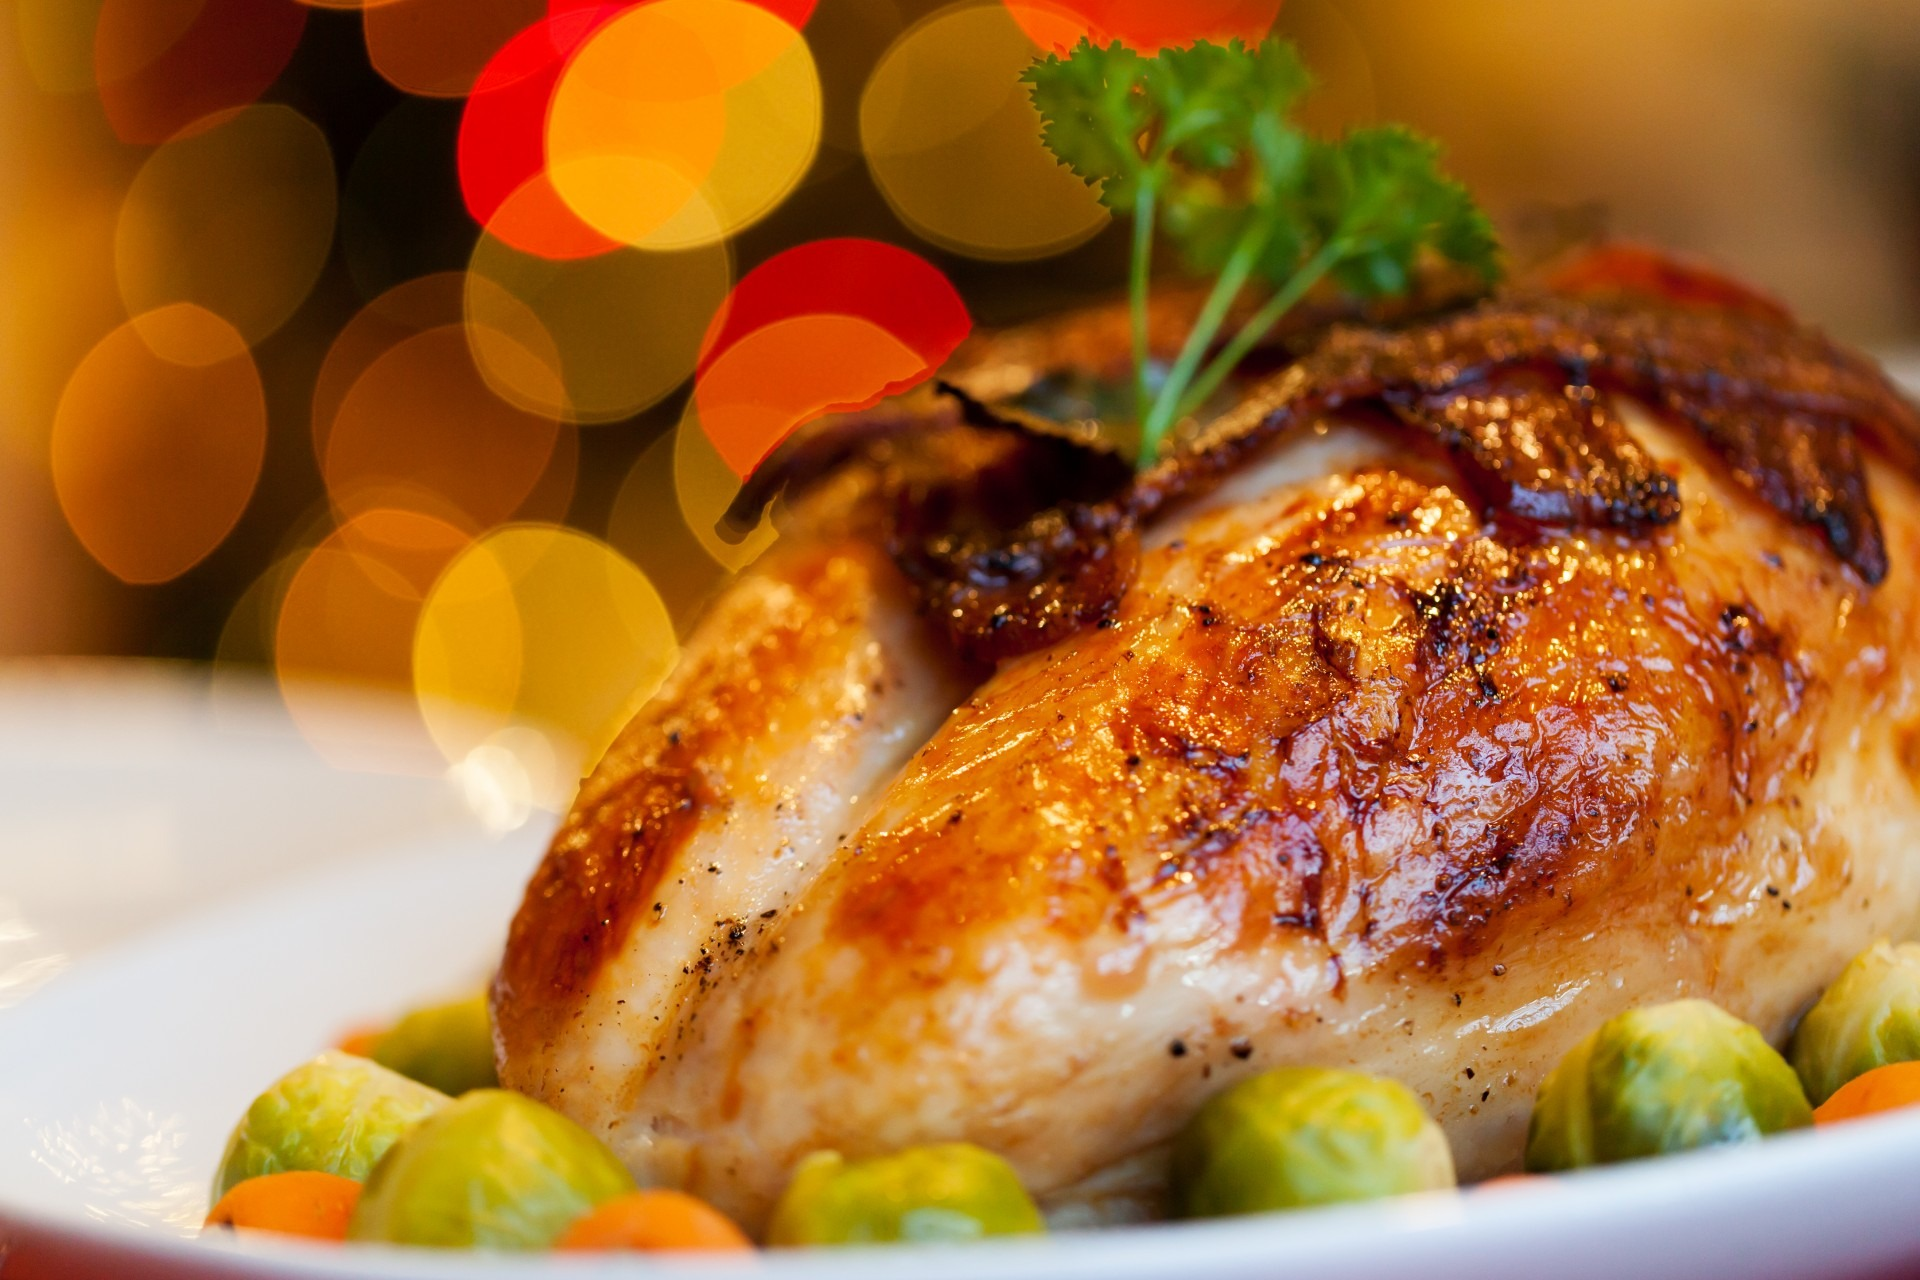 Food poisoning from turkey